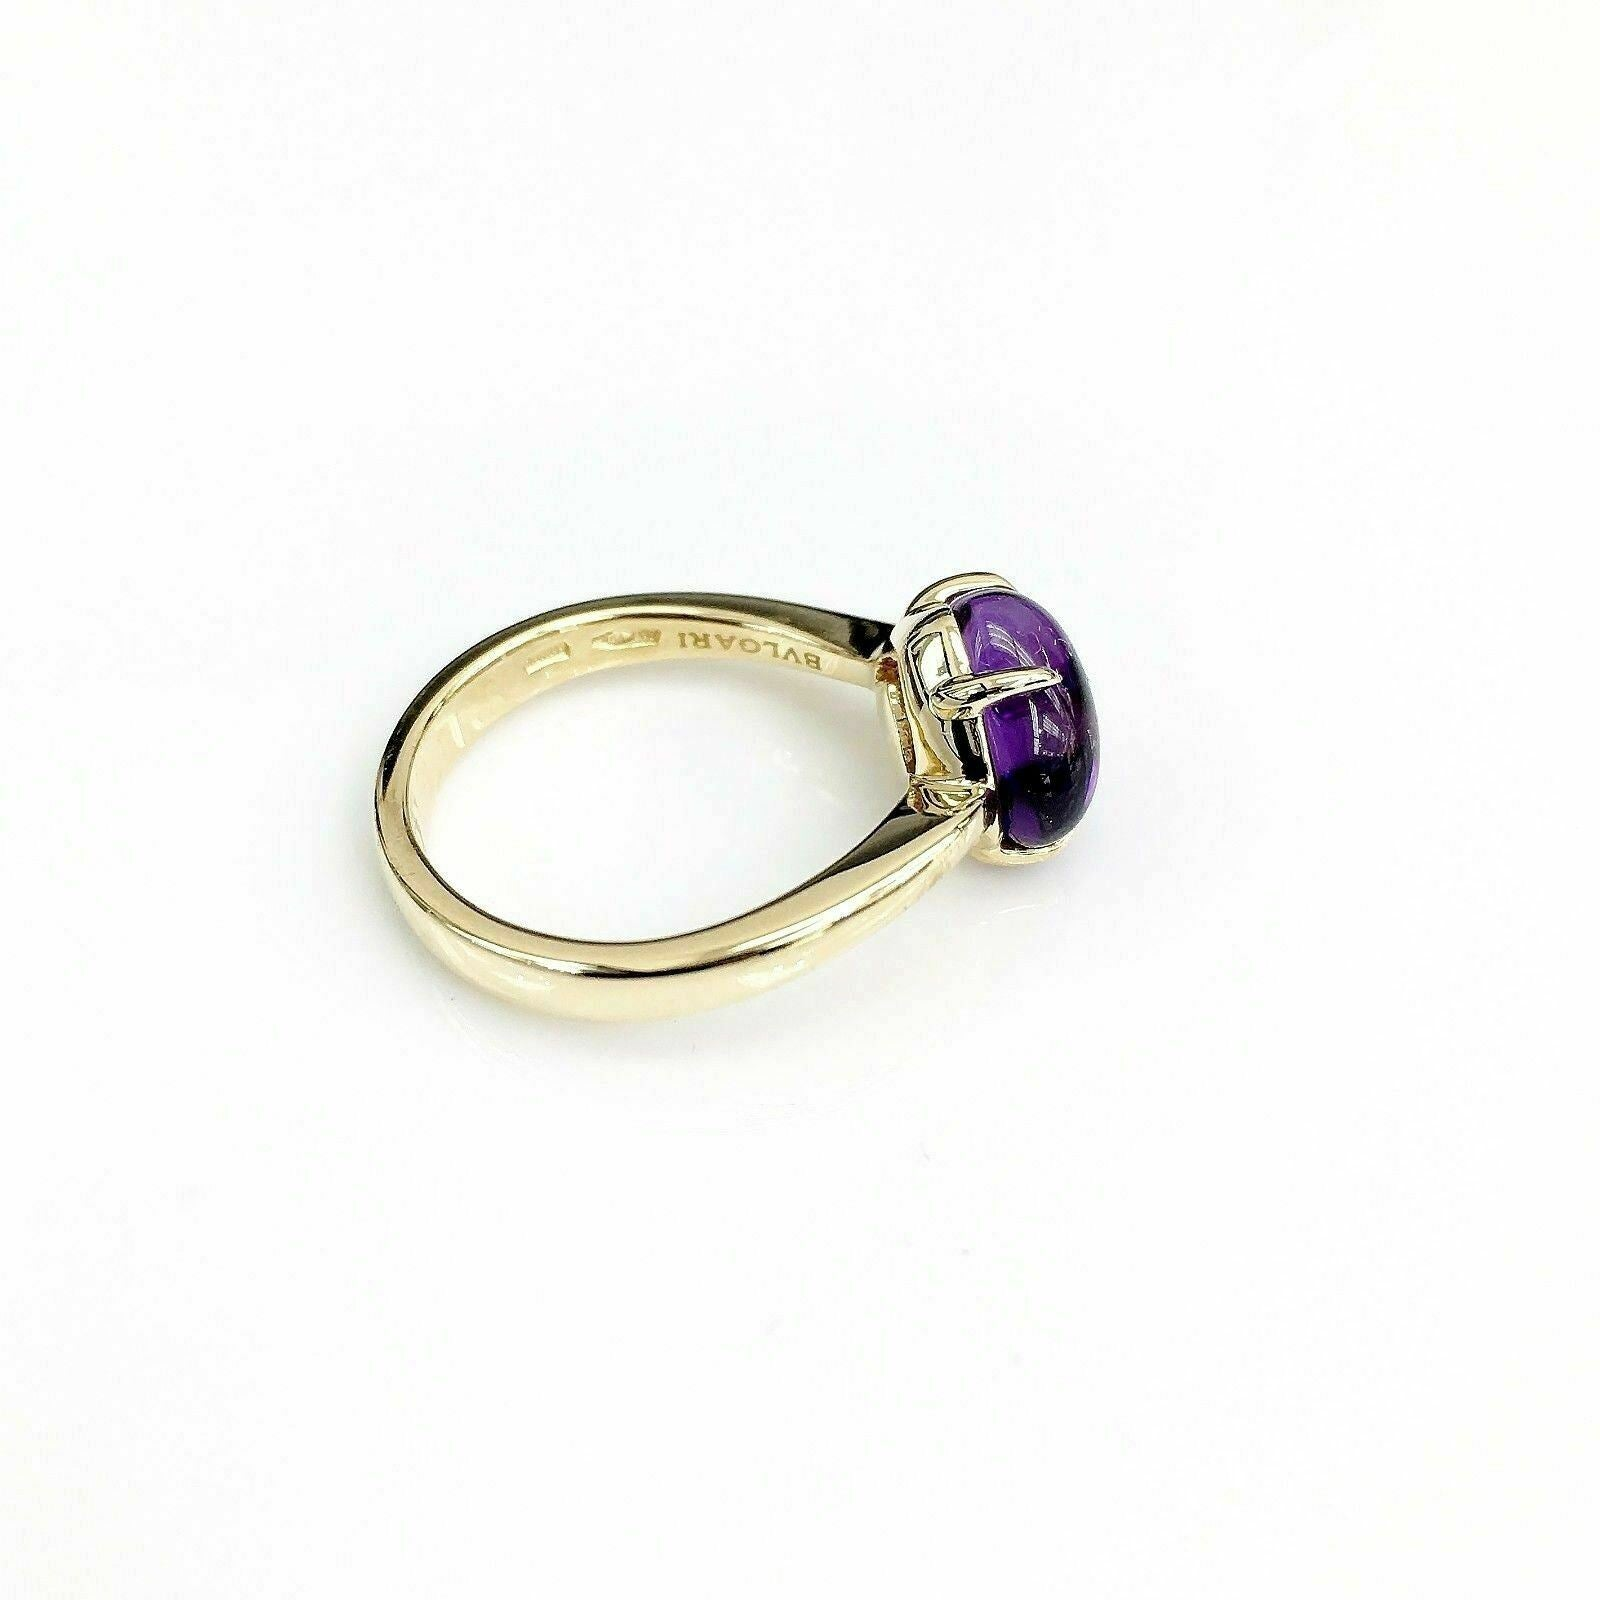 Authentic Bvlgari Solid 18 Karat Gold Sassi Amethyst Ring with Box Made in Italy